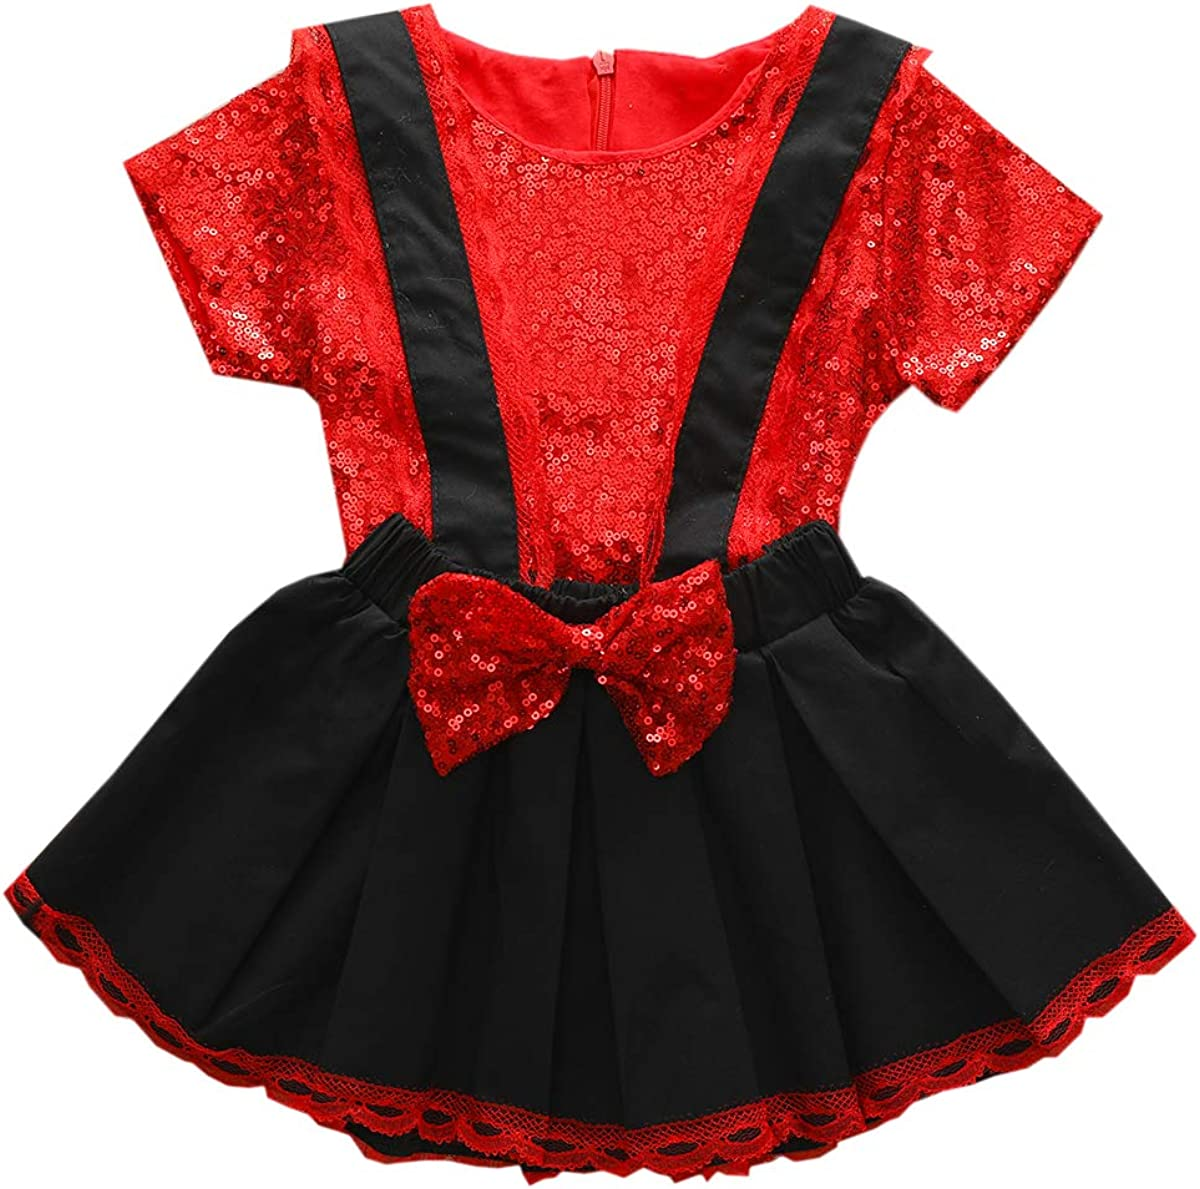 DaMohony Kids Toddler Girl Skirt T-Shirt 70% OFF Fees free!! Outlet Outfits + Suspe Sequins